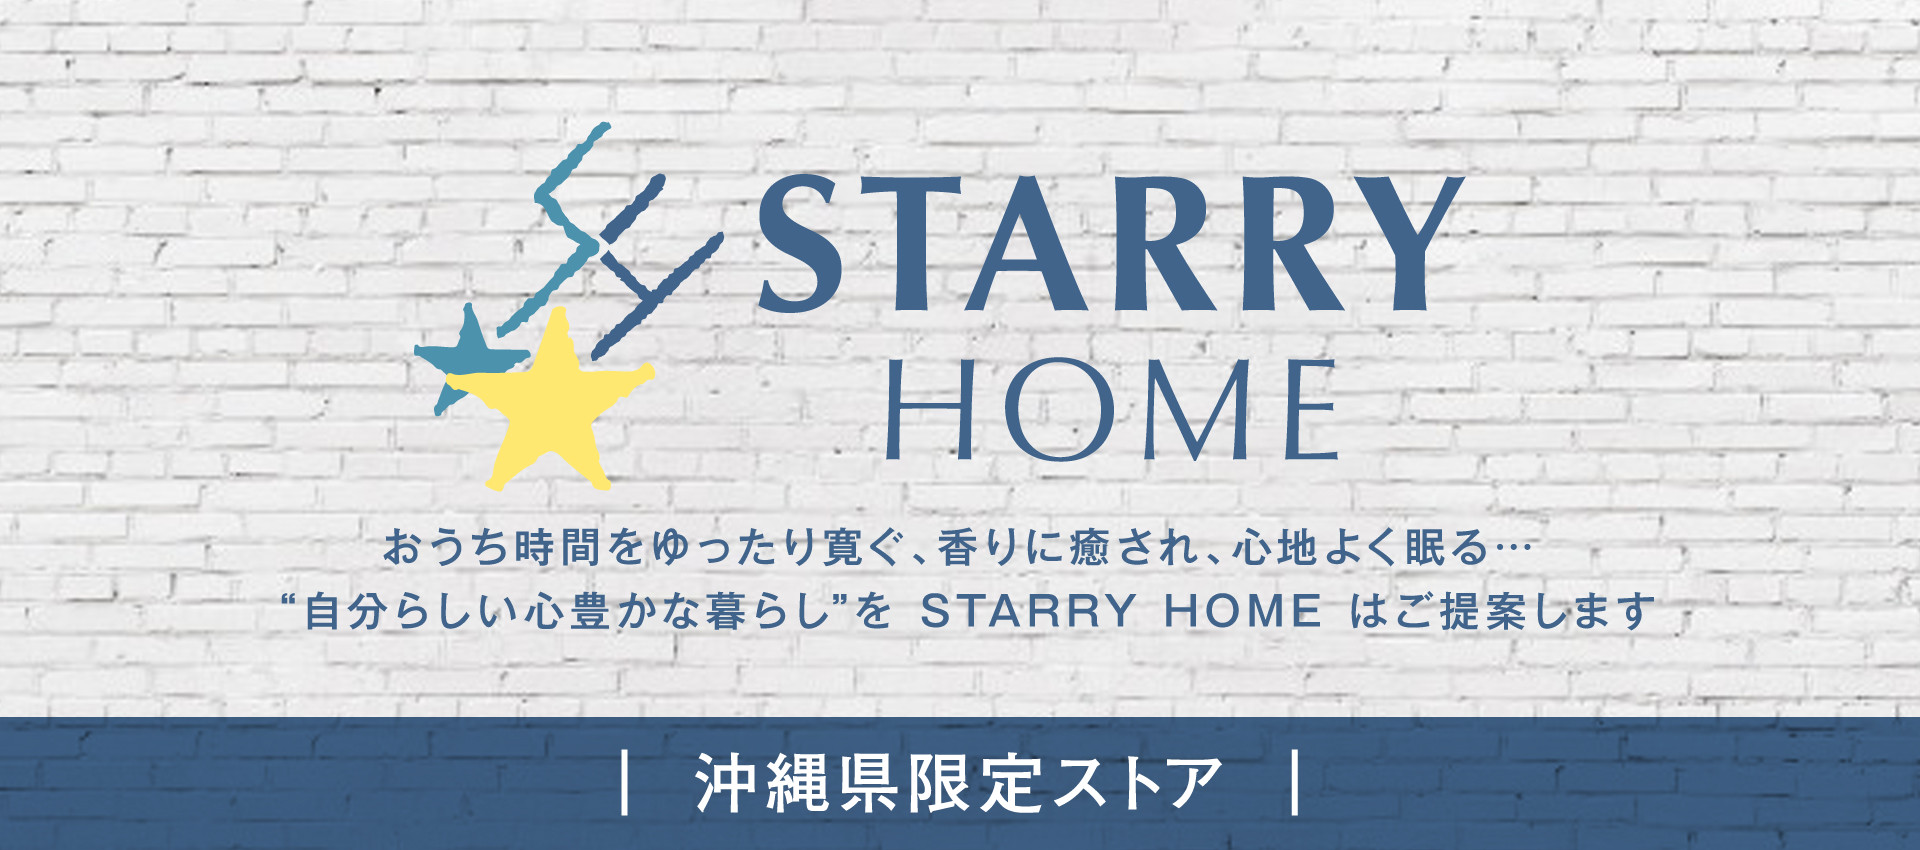 starryhome